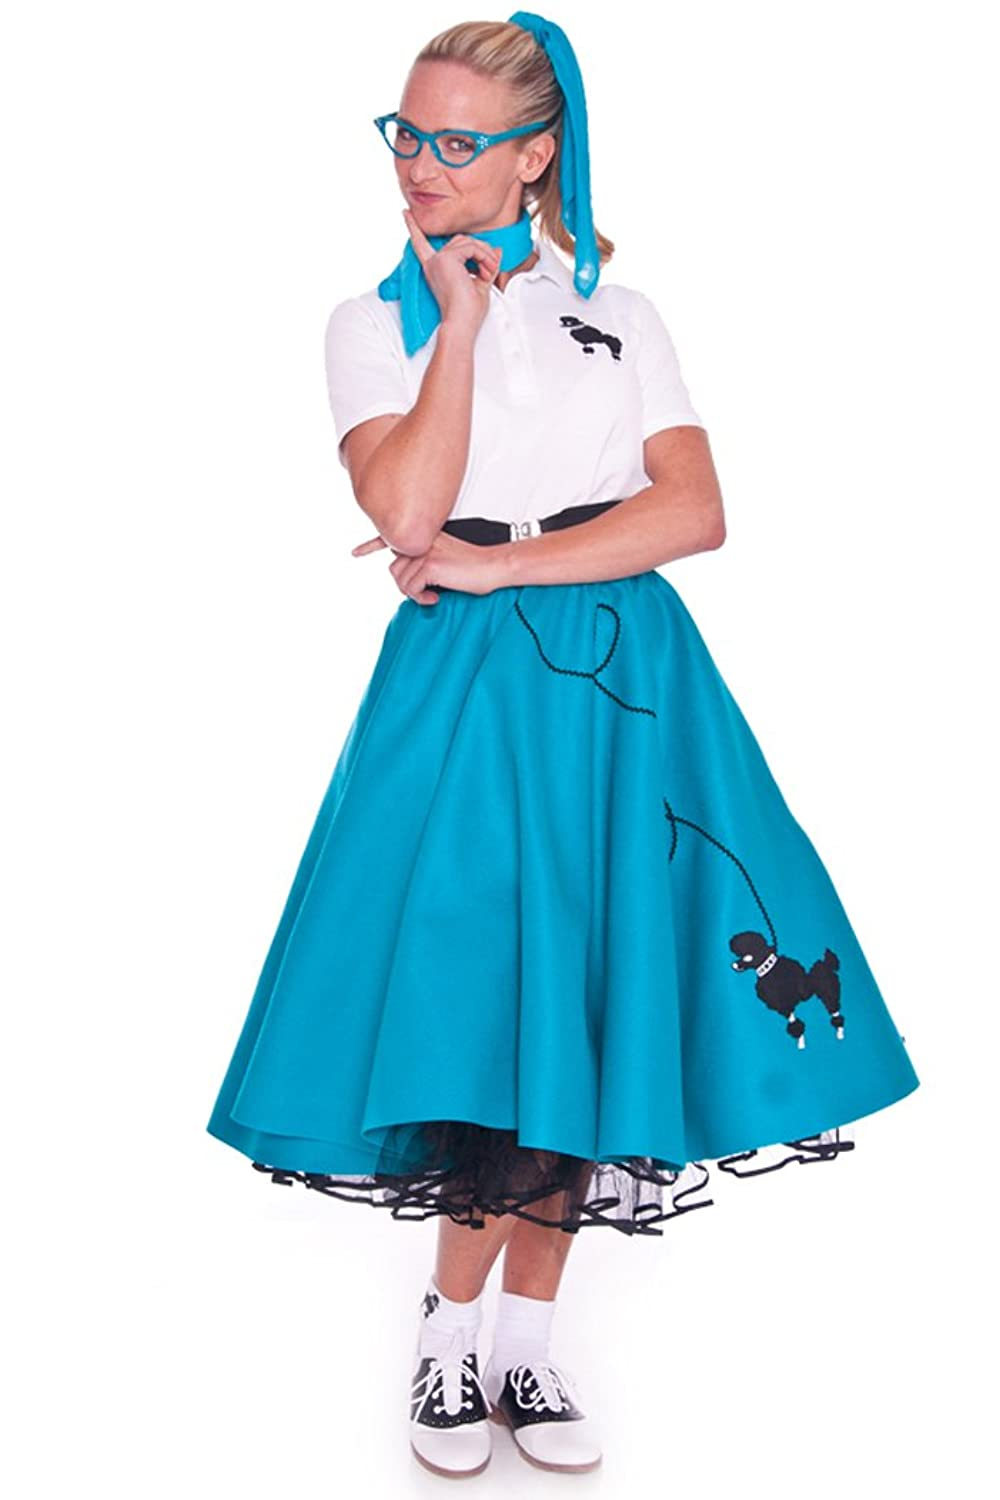 1950s Costumes- Poodle Skirts, Grease, Monroe, Pin Up, I Love Lucy Hip Hop 50s Shop Adult 7 Piece Poodle Skirt Costume Set $119.99 AT vintagedancer.com